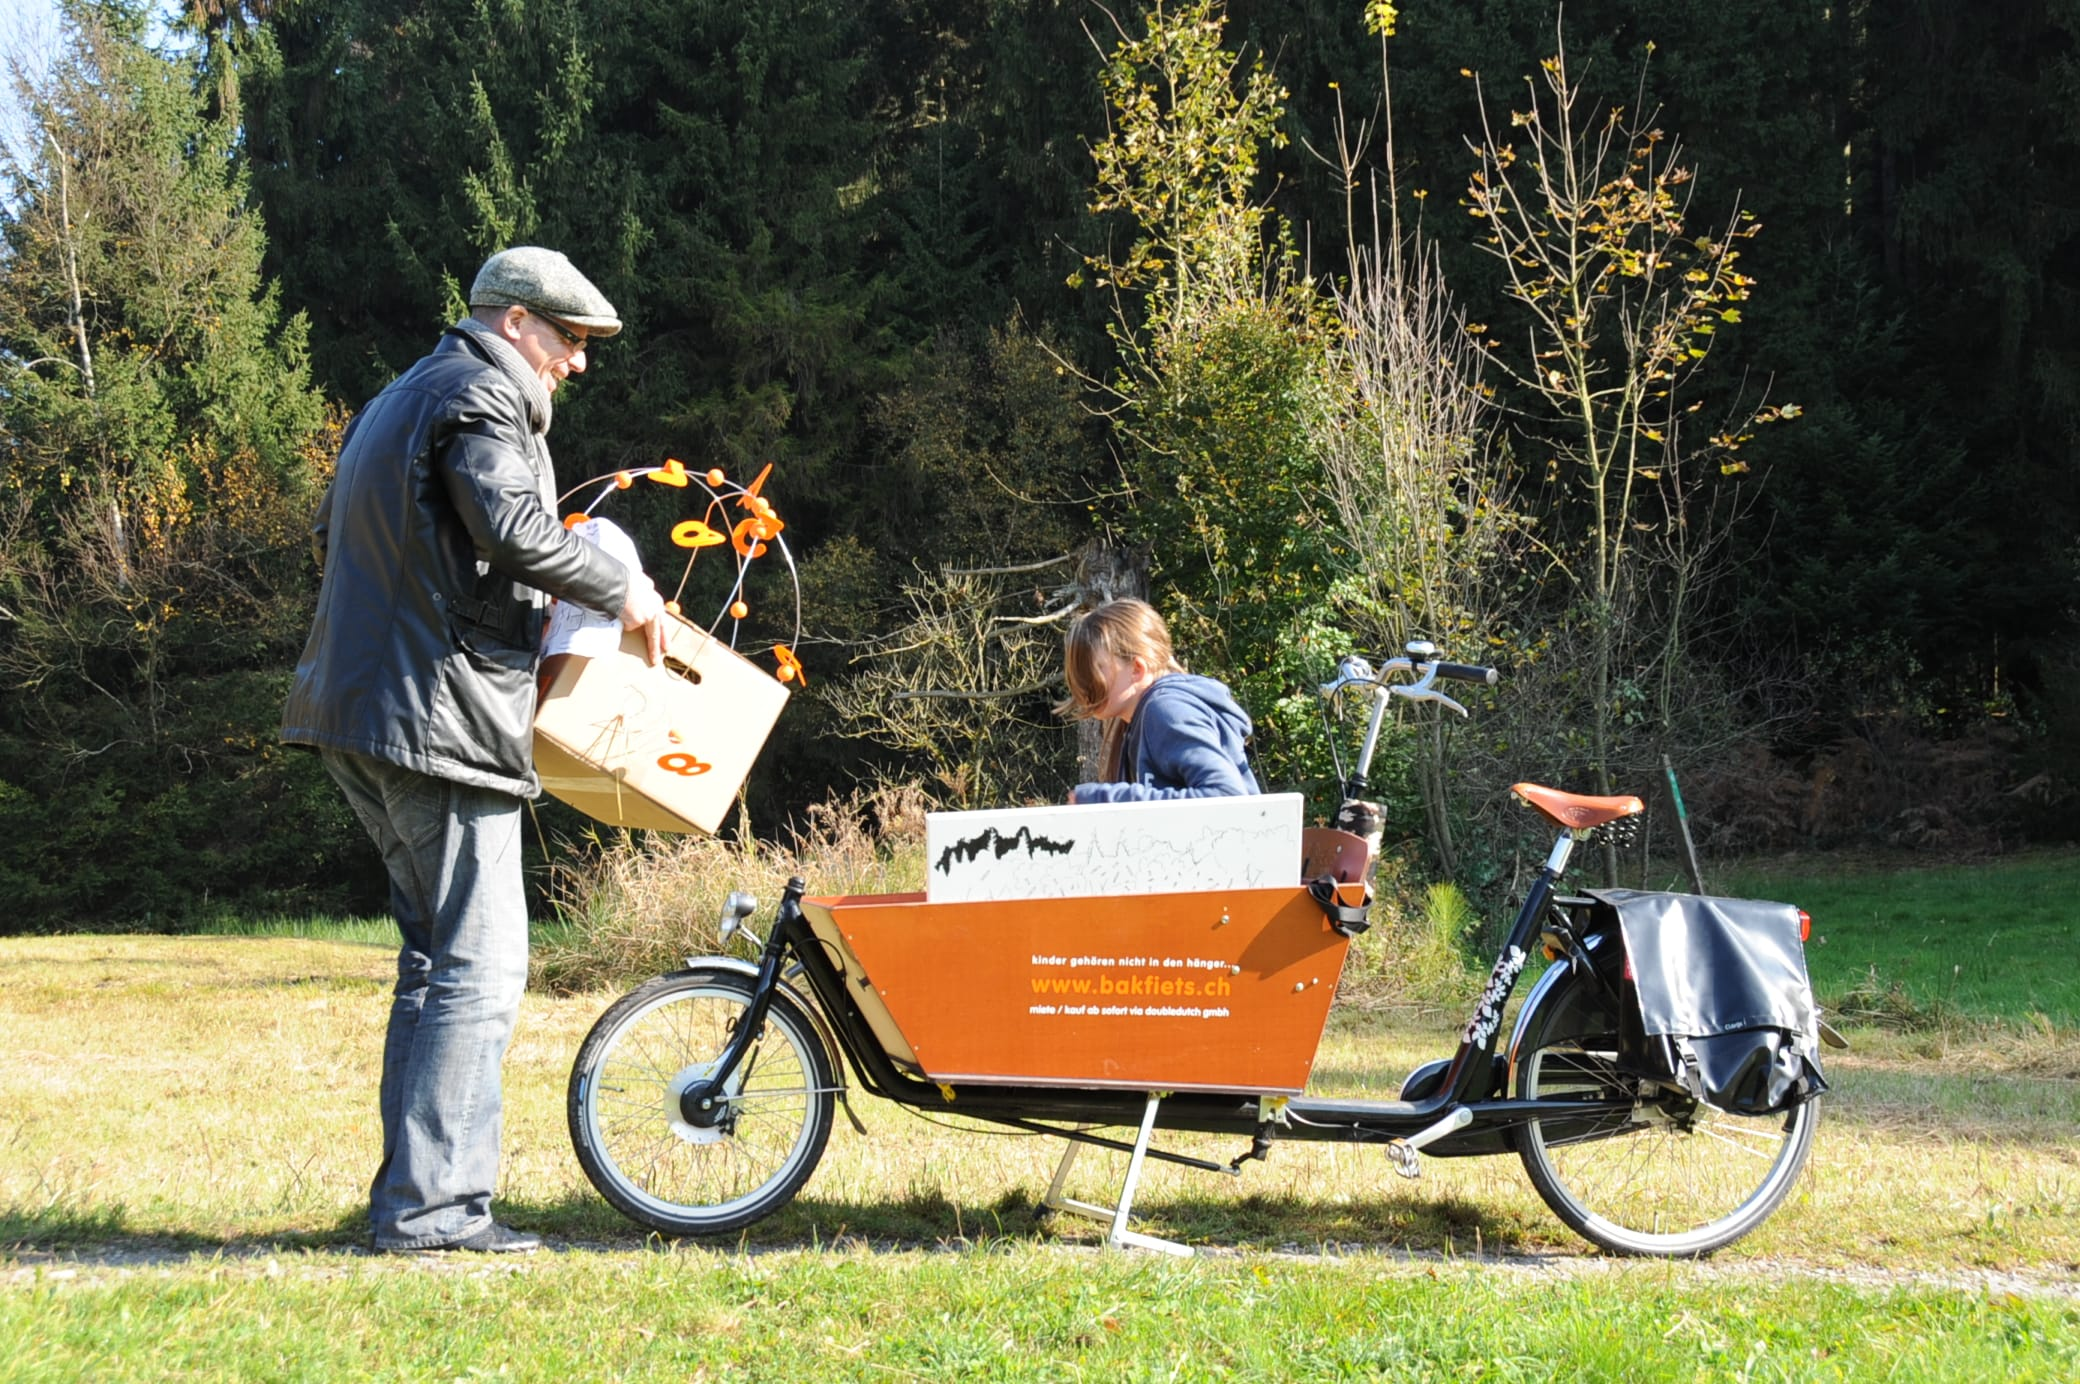 The means of transport: Sjoerd, Anne-Sophie, box, Bakfiets delivery bike…